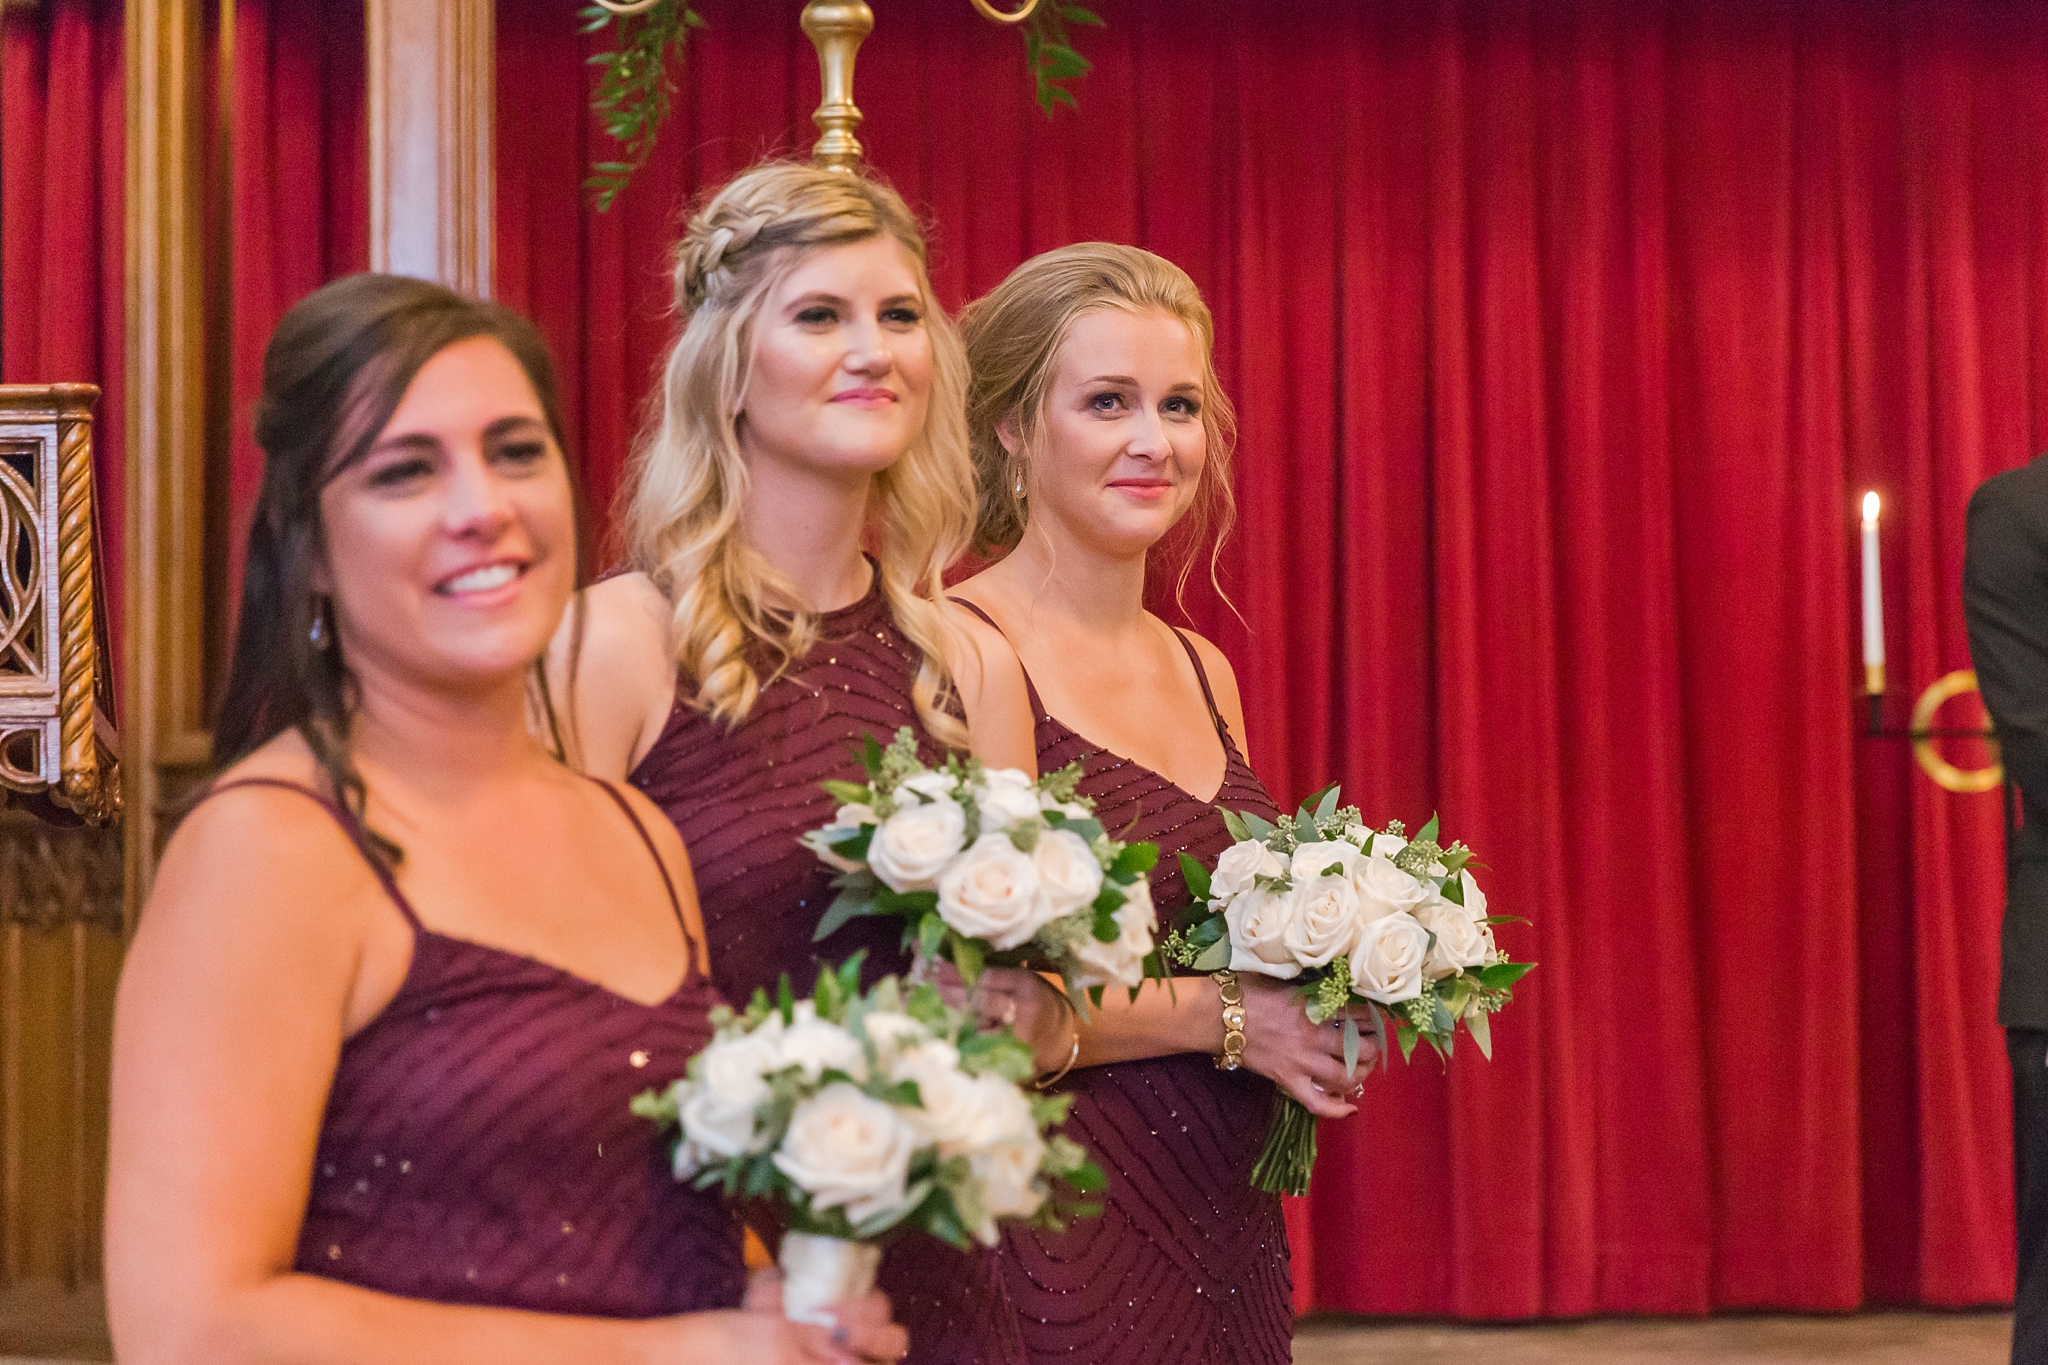 candid-romantic-wedding-photos-at-the-masonic-temple-belle-isle-detroit-institute-of-arts-in-detroit-michigan-by-courtney-carolyn-photography_0068.jpg